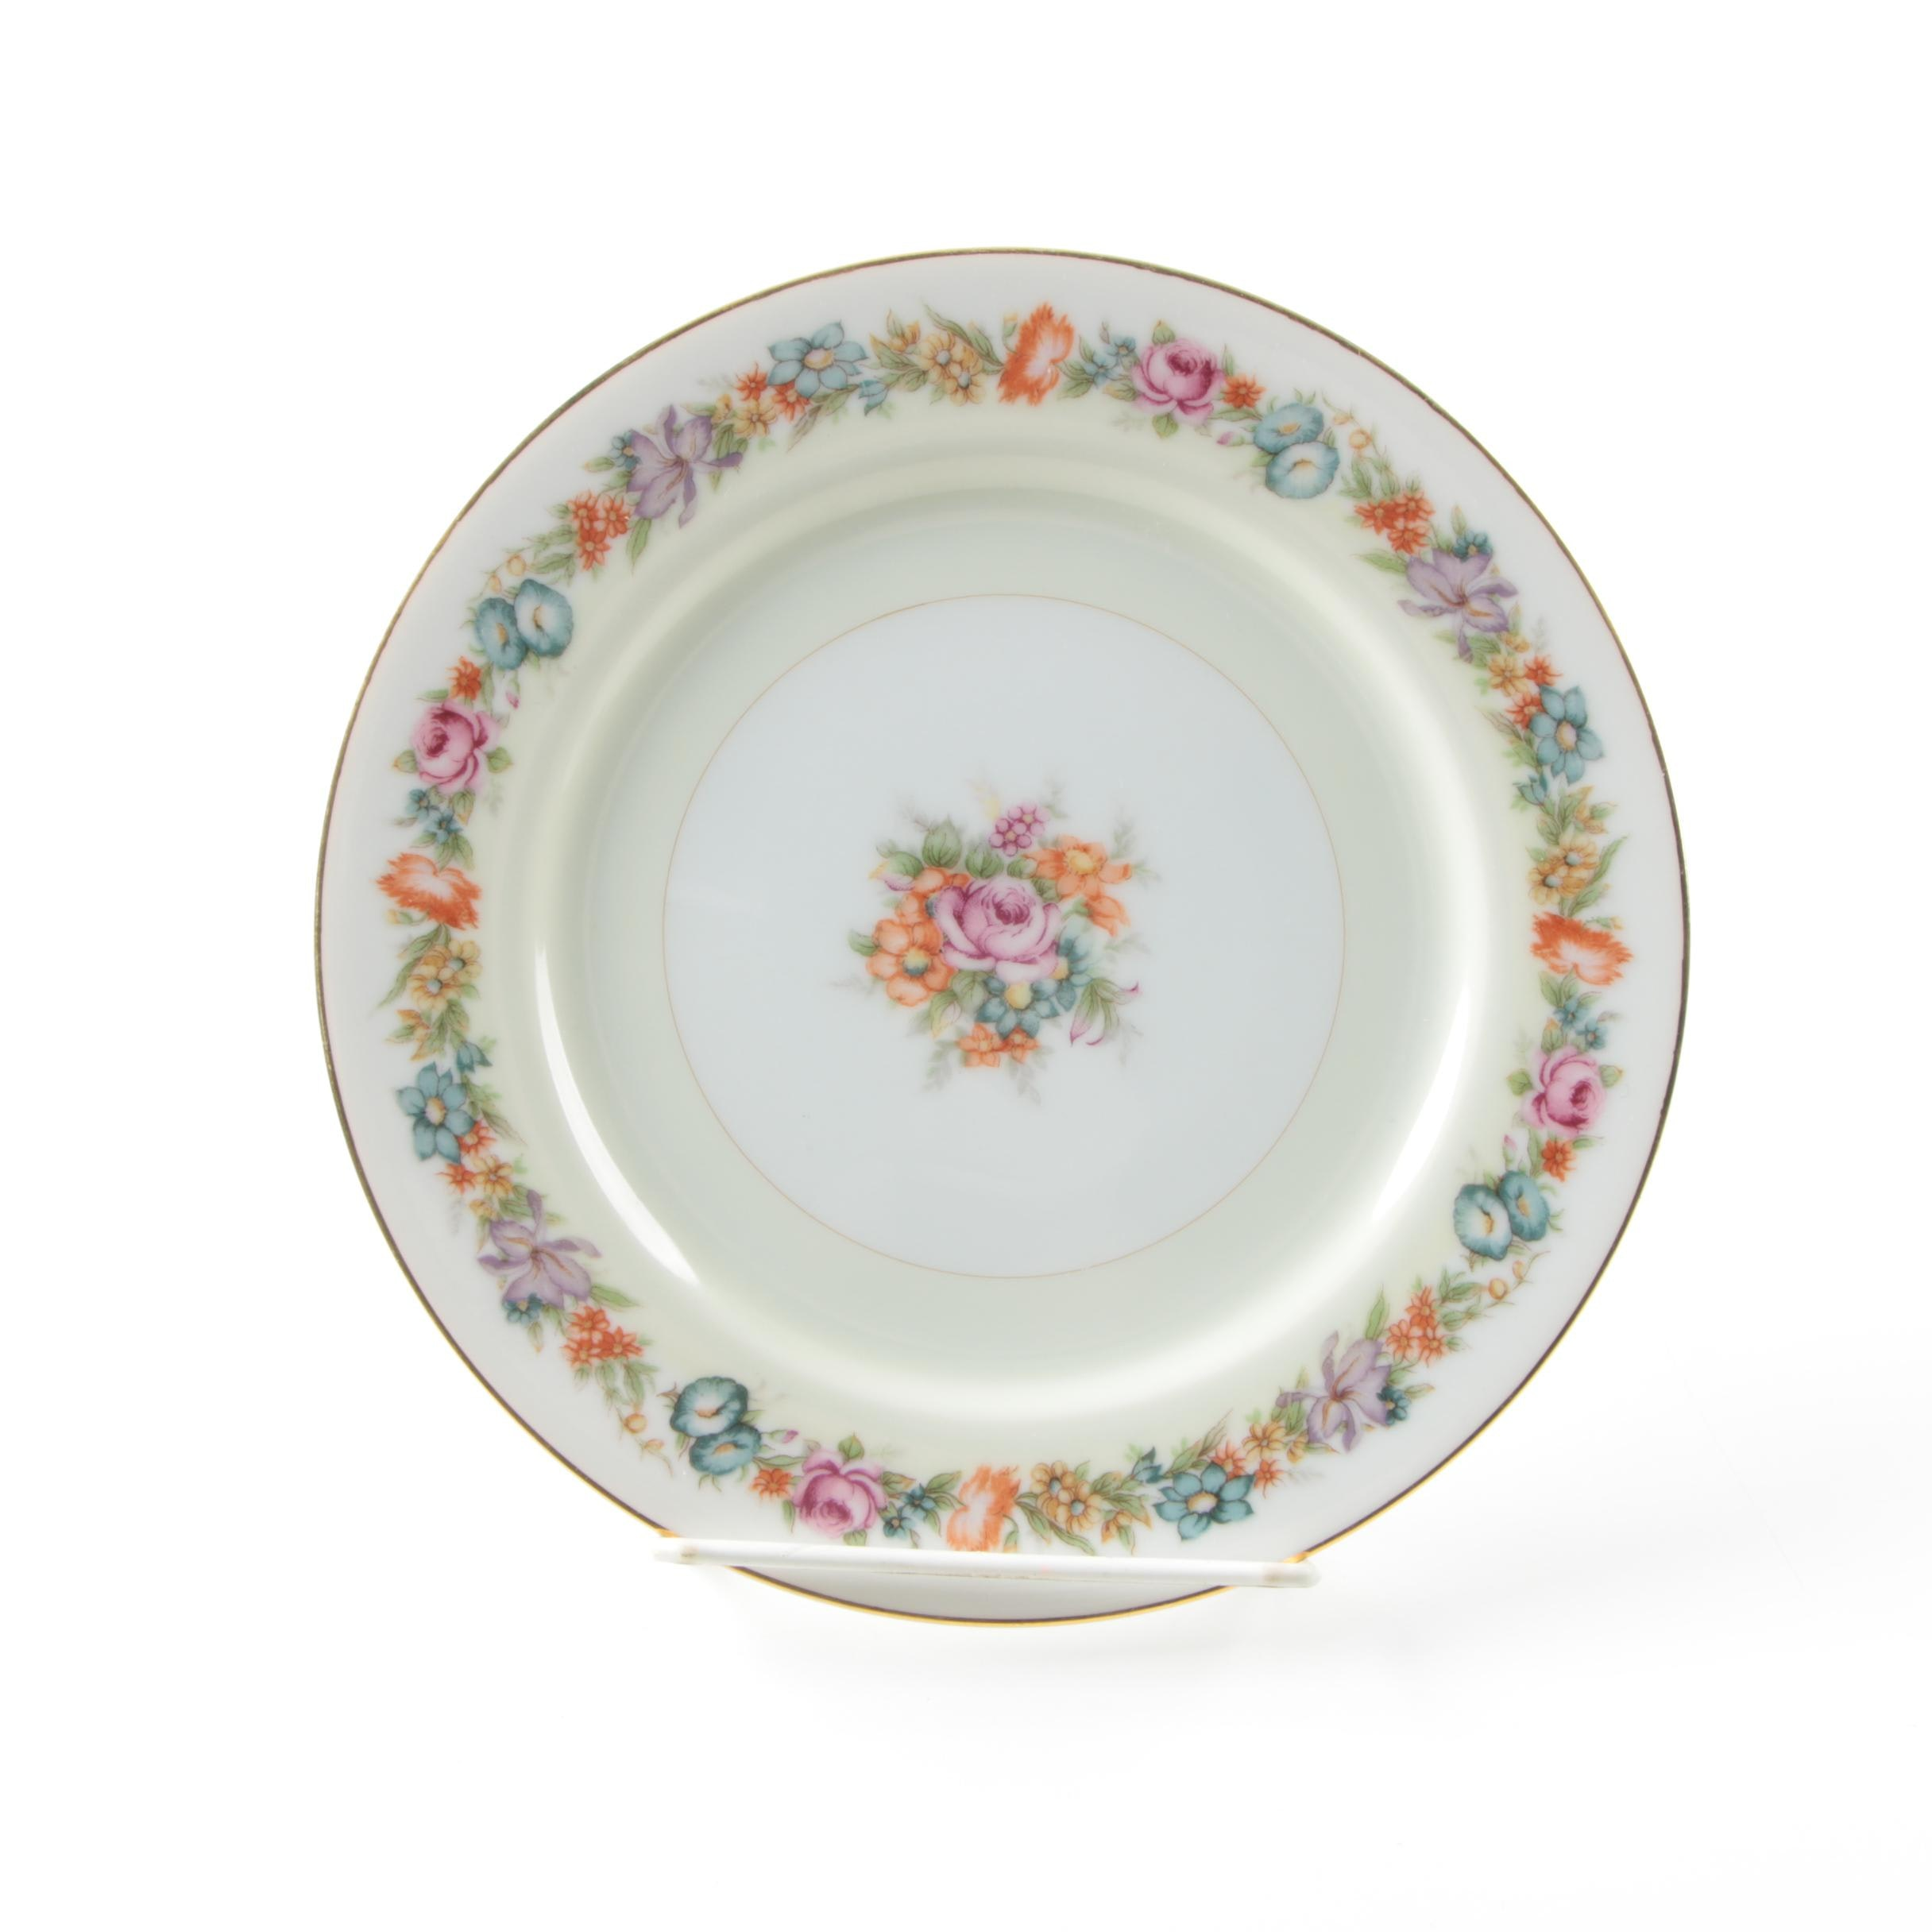 Occupied Japan Narumi China \ Flower Garden\  Porcelain Salad ...  sc 1 st  EBTH.com & Occupied Japan Narumi China \